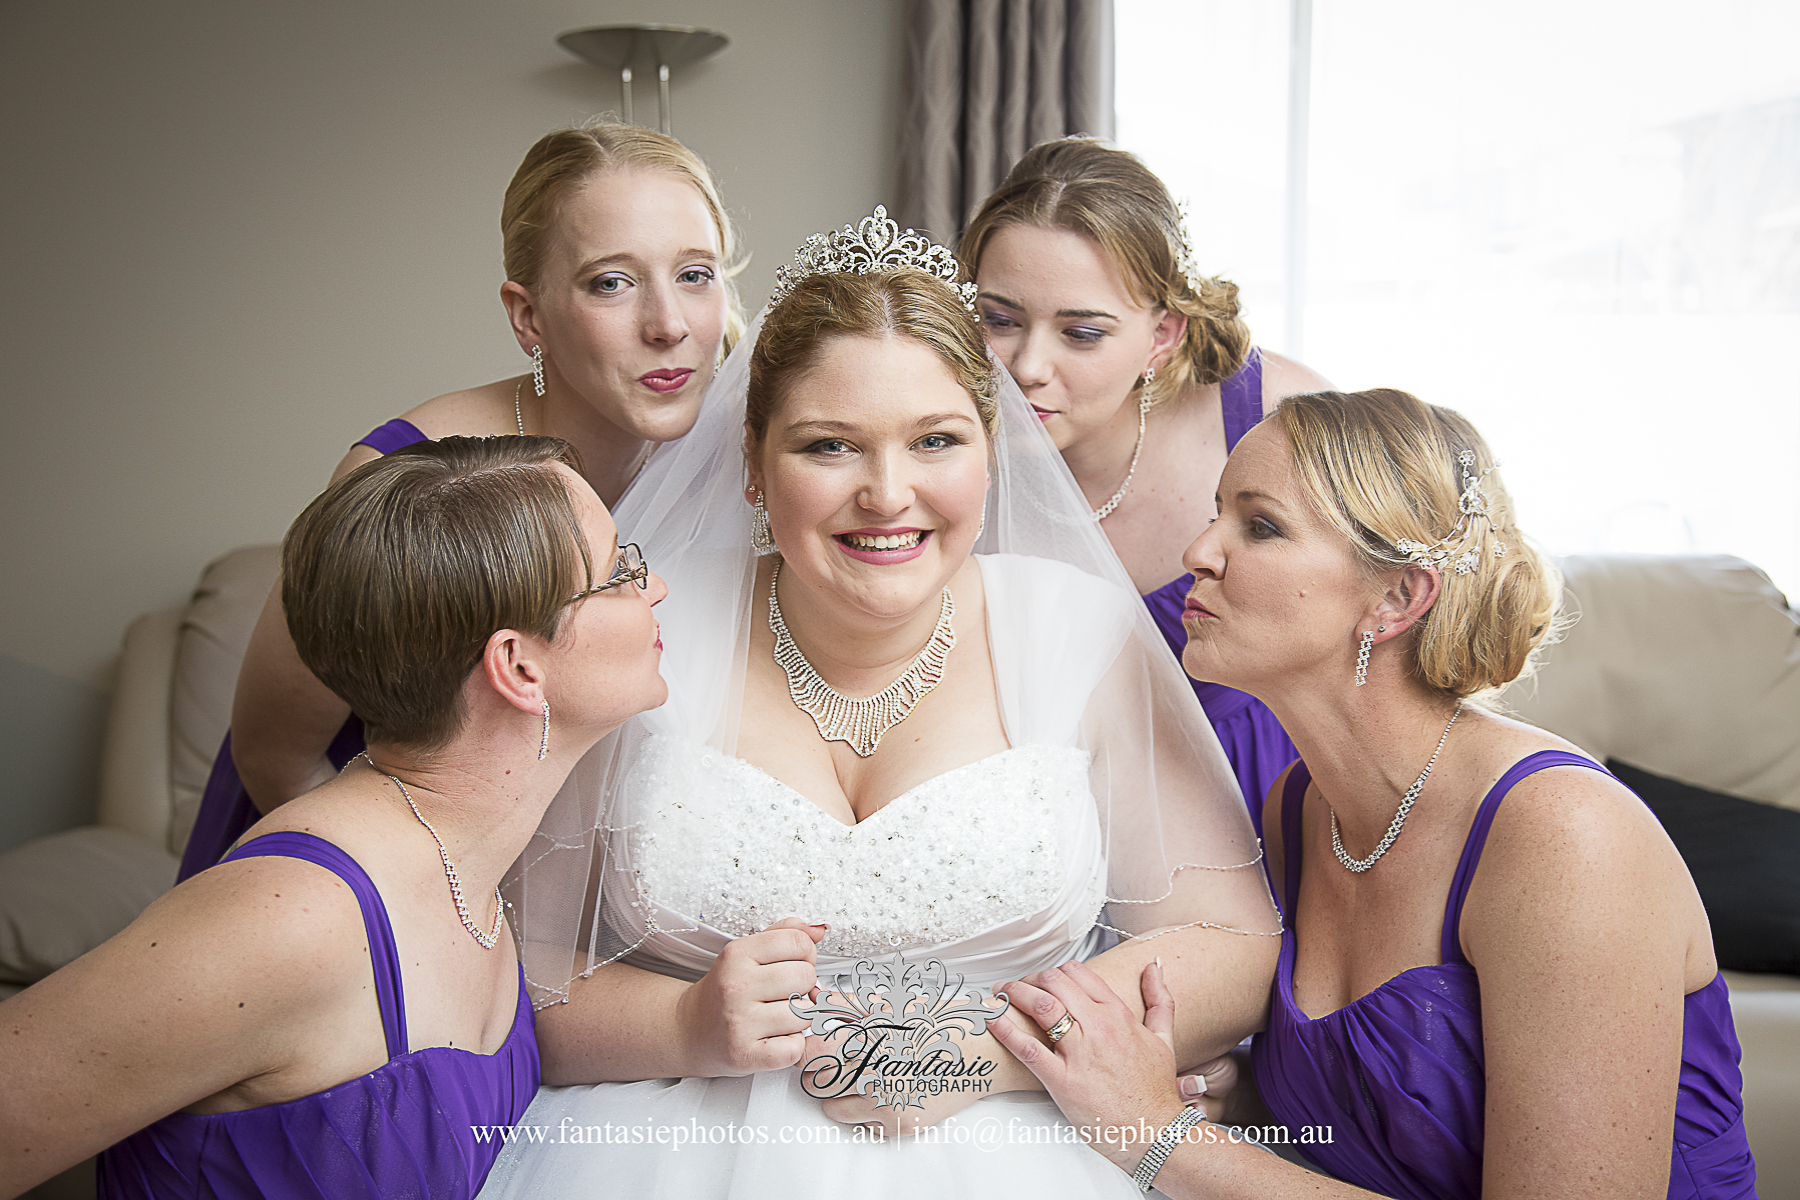 Wedding Photography at Old Church Narellan The old St Thomas Chapel | Fantasie Photography